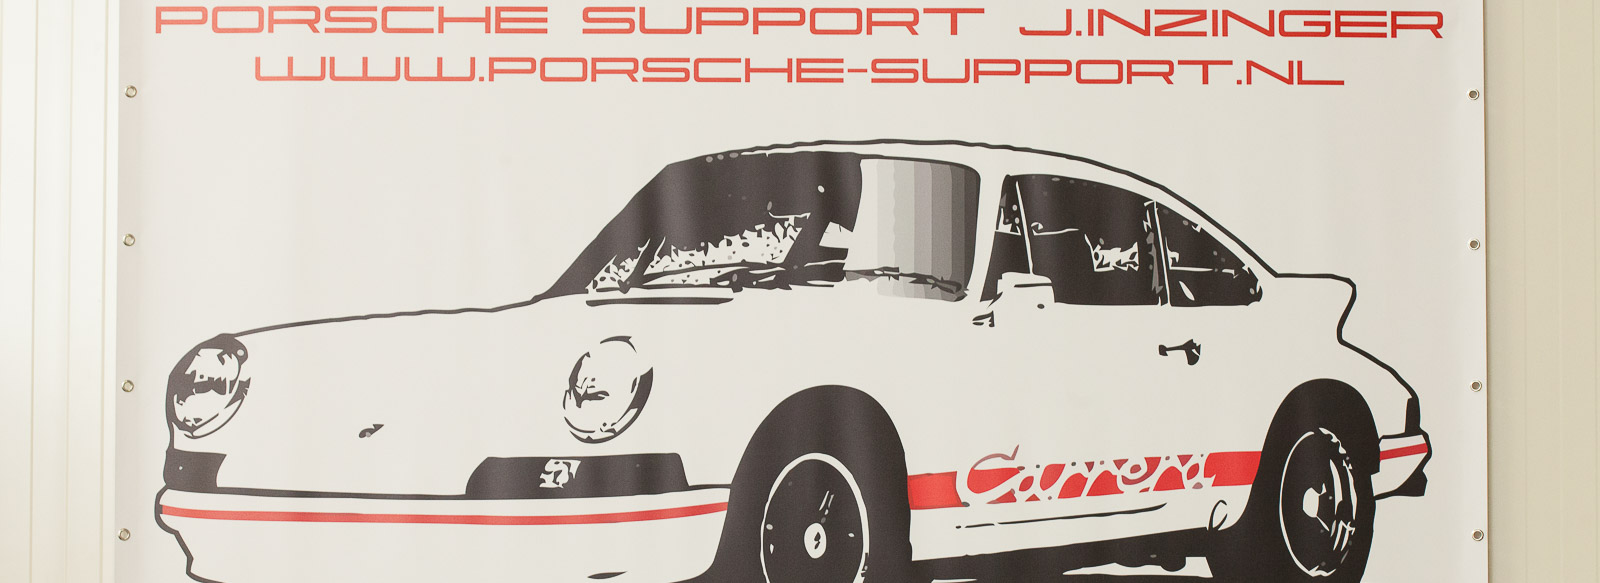 porsche-support-pressvisuals-131